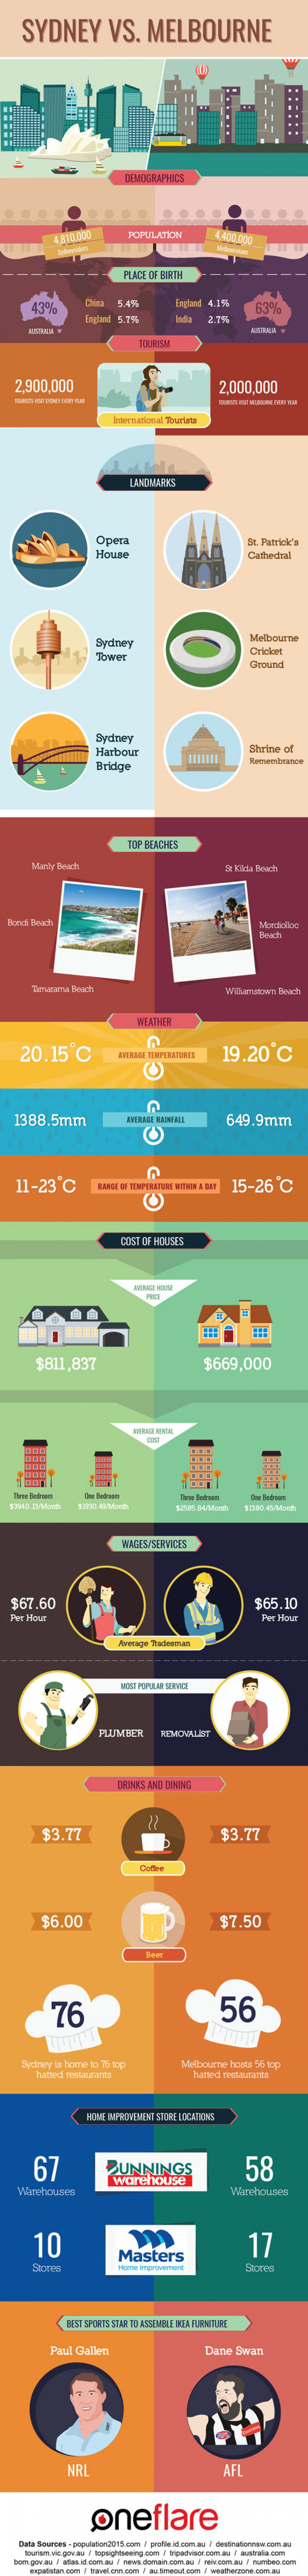 Melbourne vs Sydney Which City is Better? Infographic